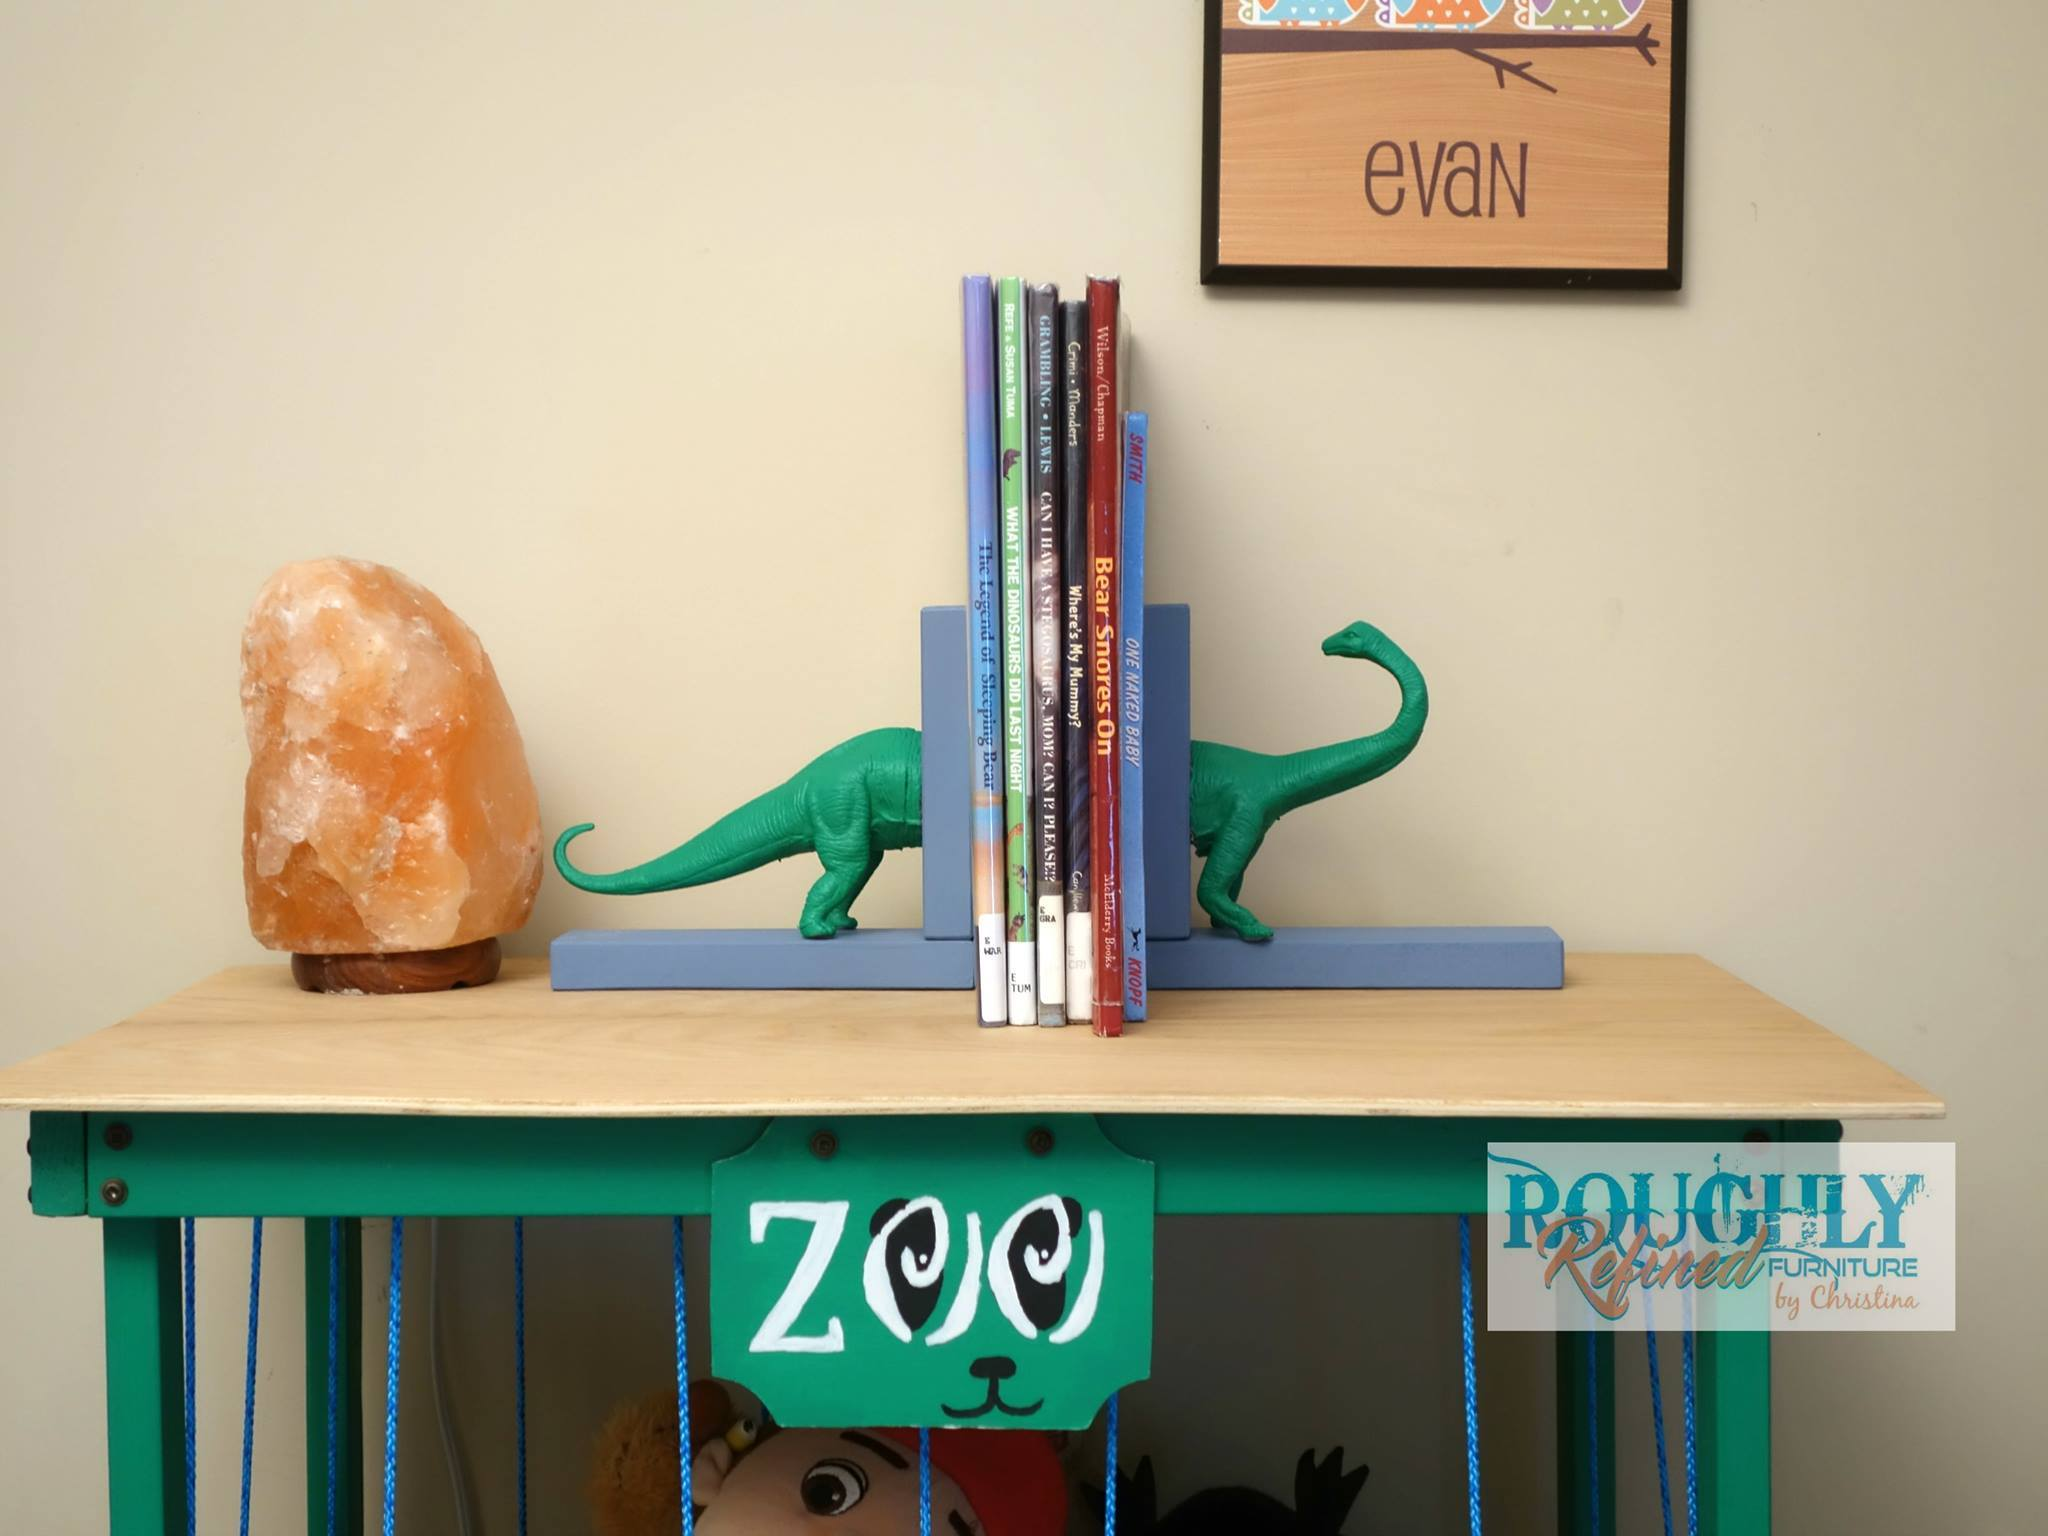 Christina From Roughly Refined Furniture Created This Absolutely Adorable Set Of Bookends For Her Boys Using A Plastic Dinosaur The Dollar Store